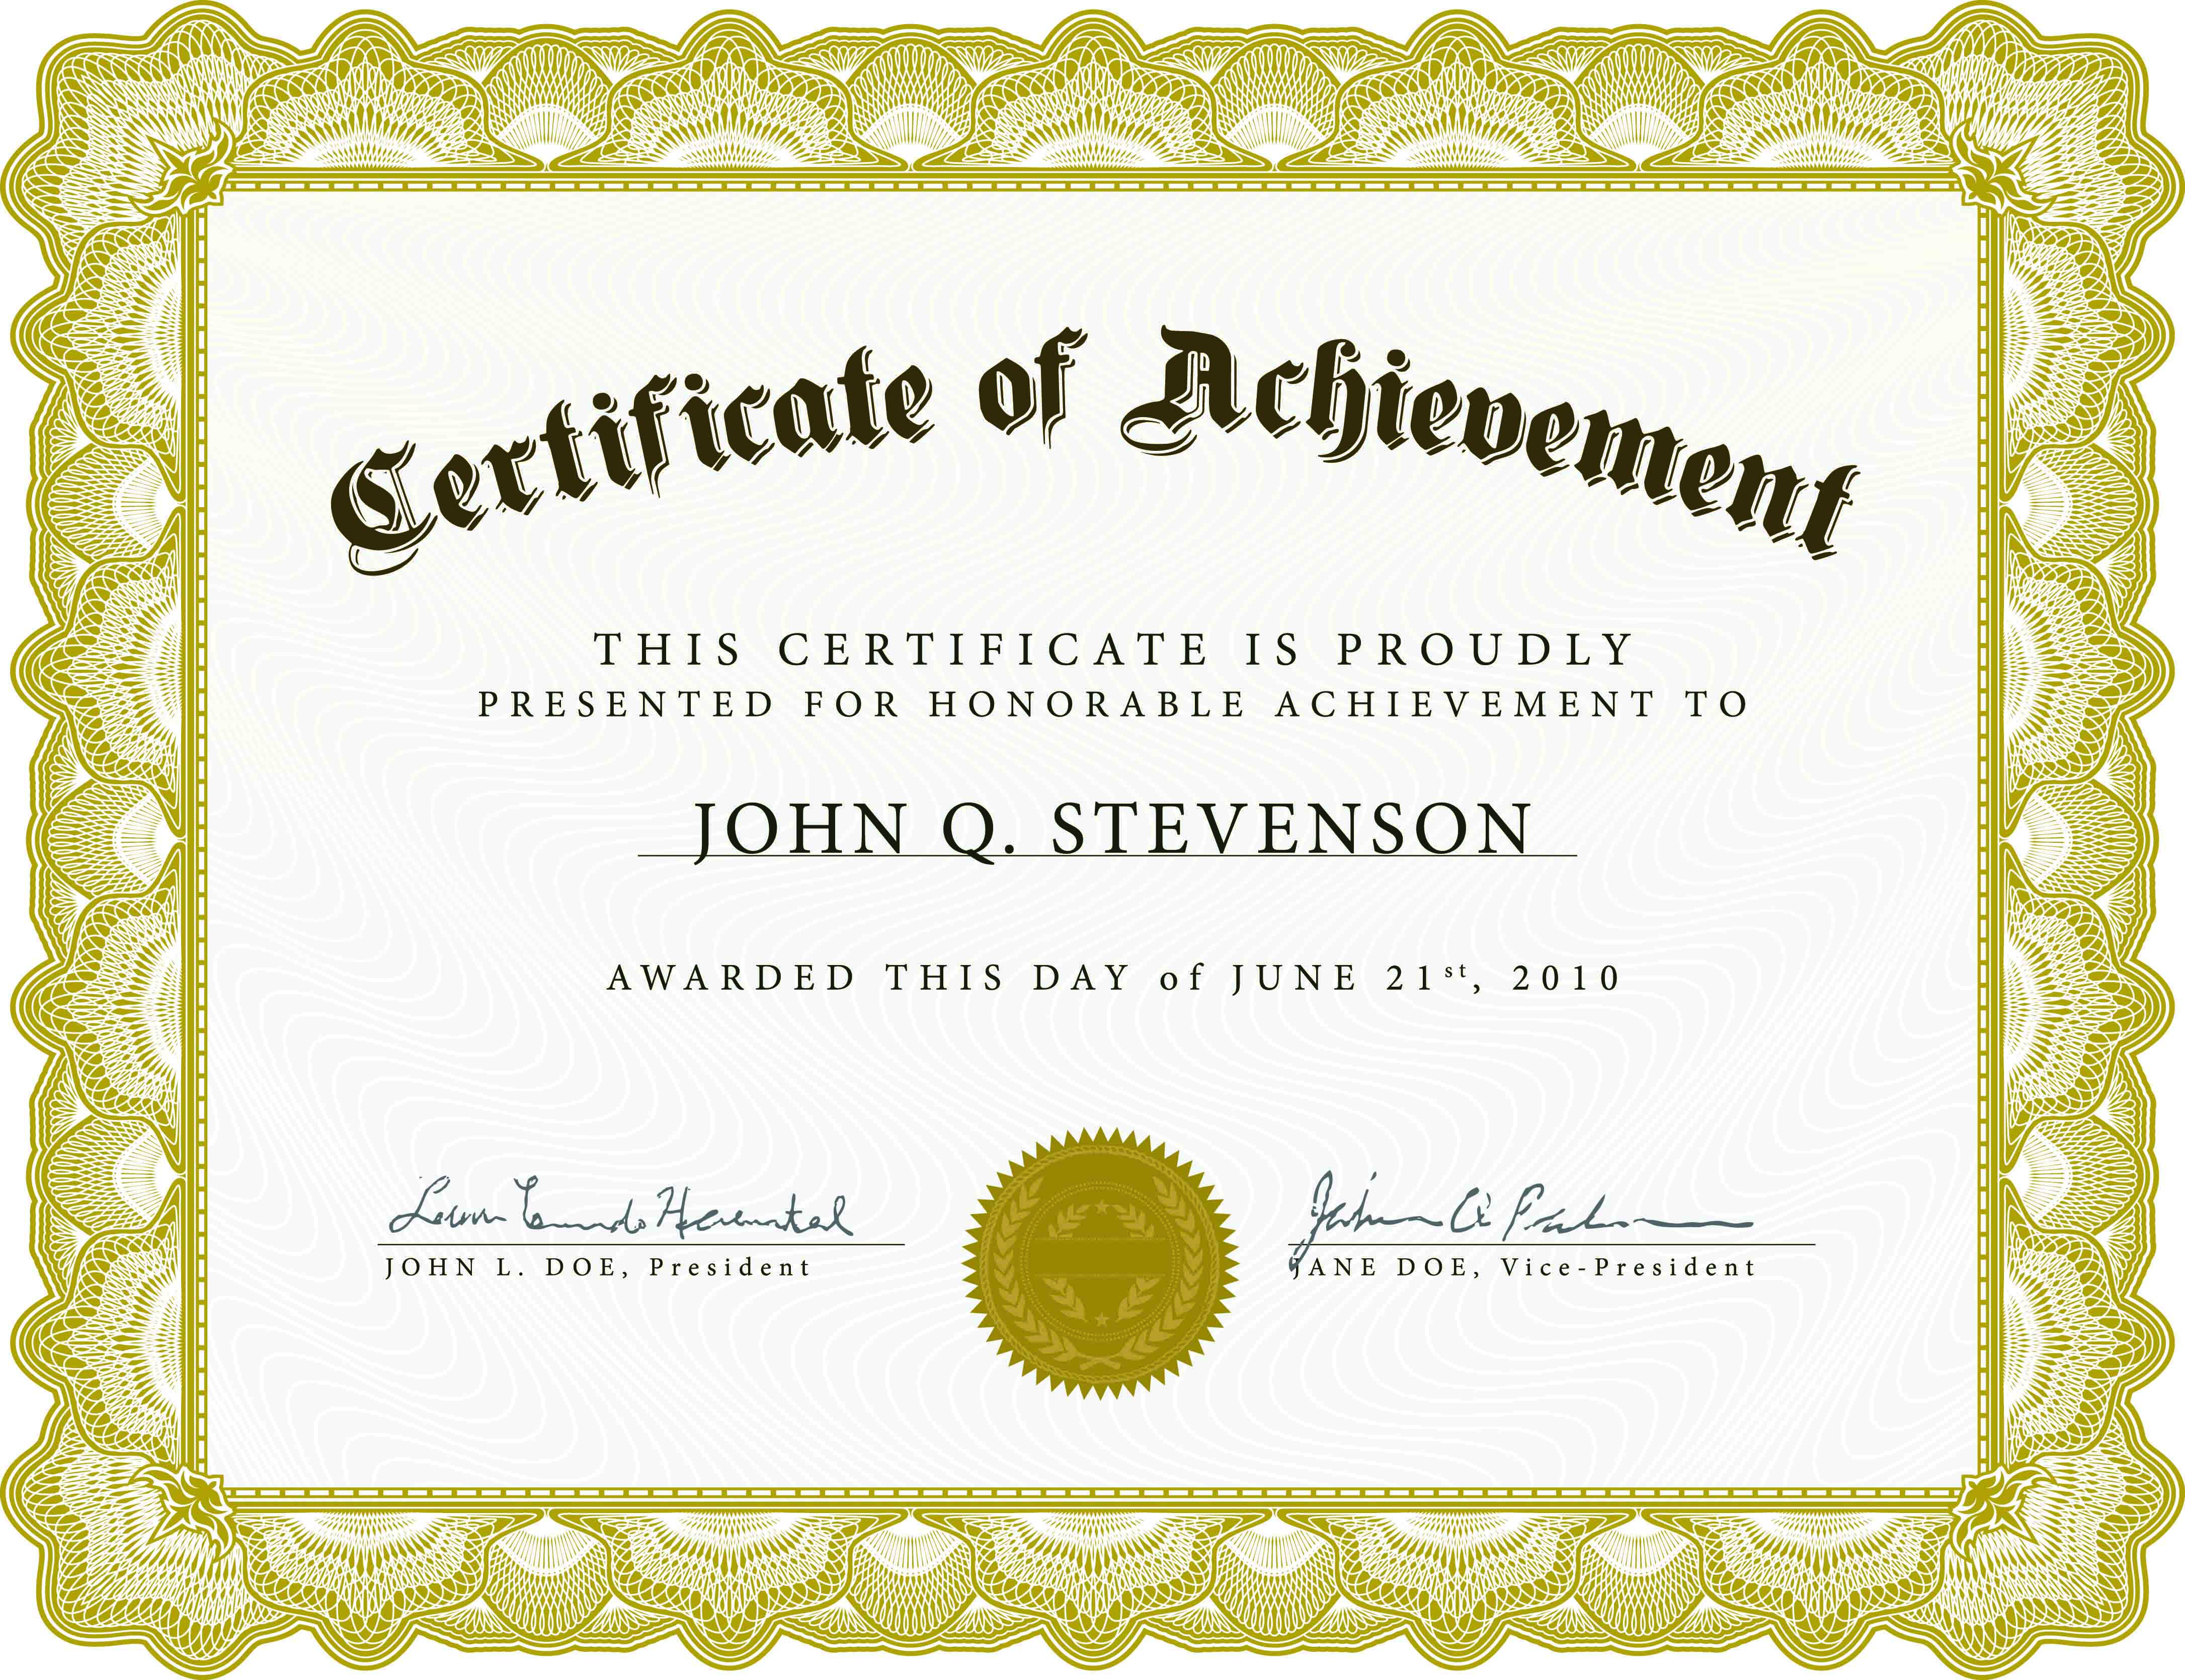 12 Certificate Templates Free Downloads Images – Completion With Certificate Templates For Word Free Downloads